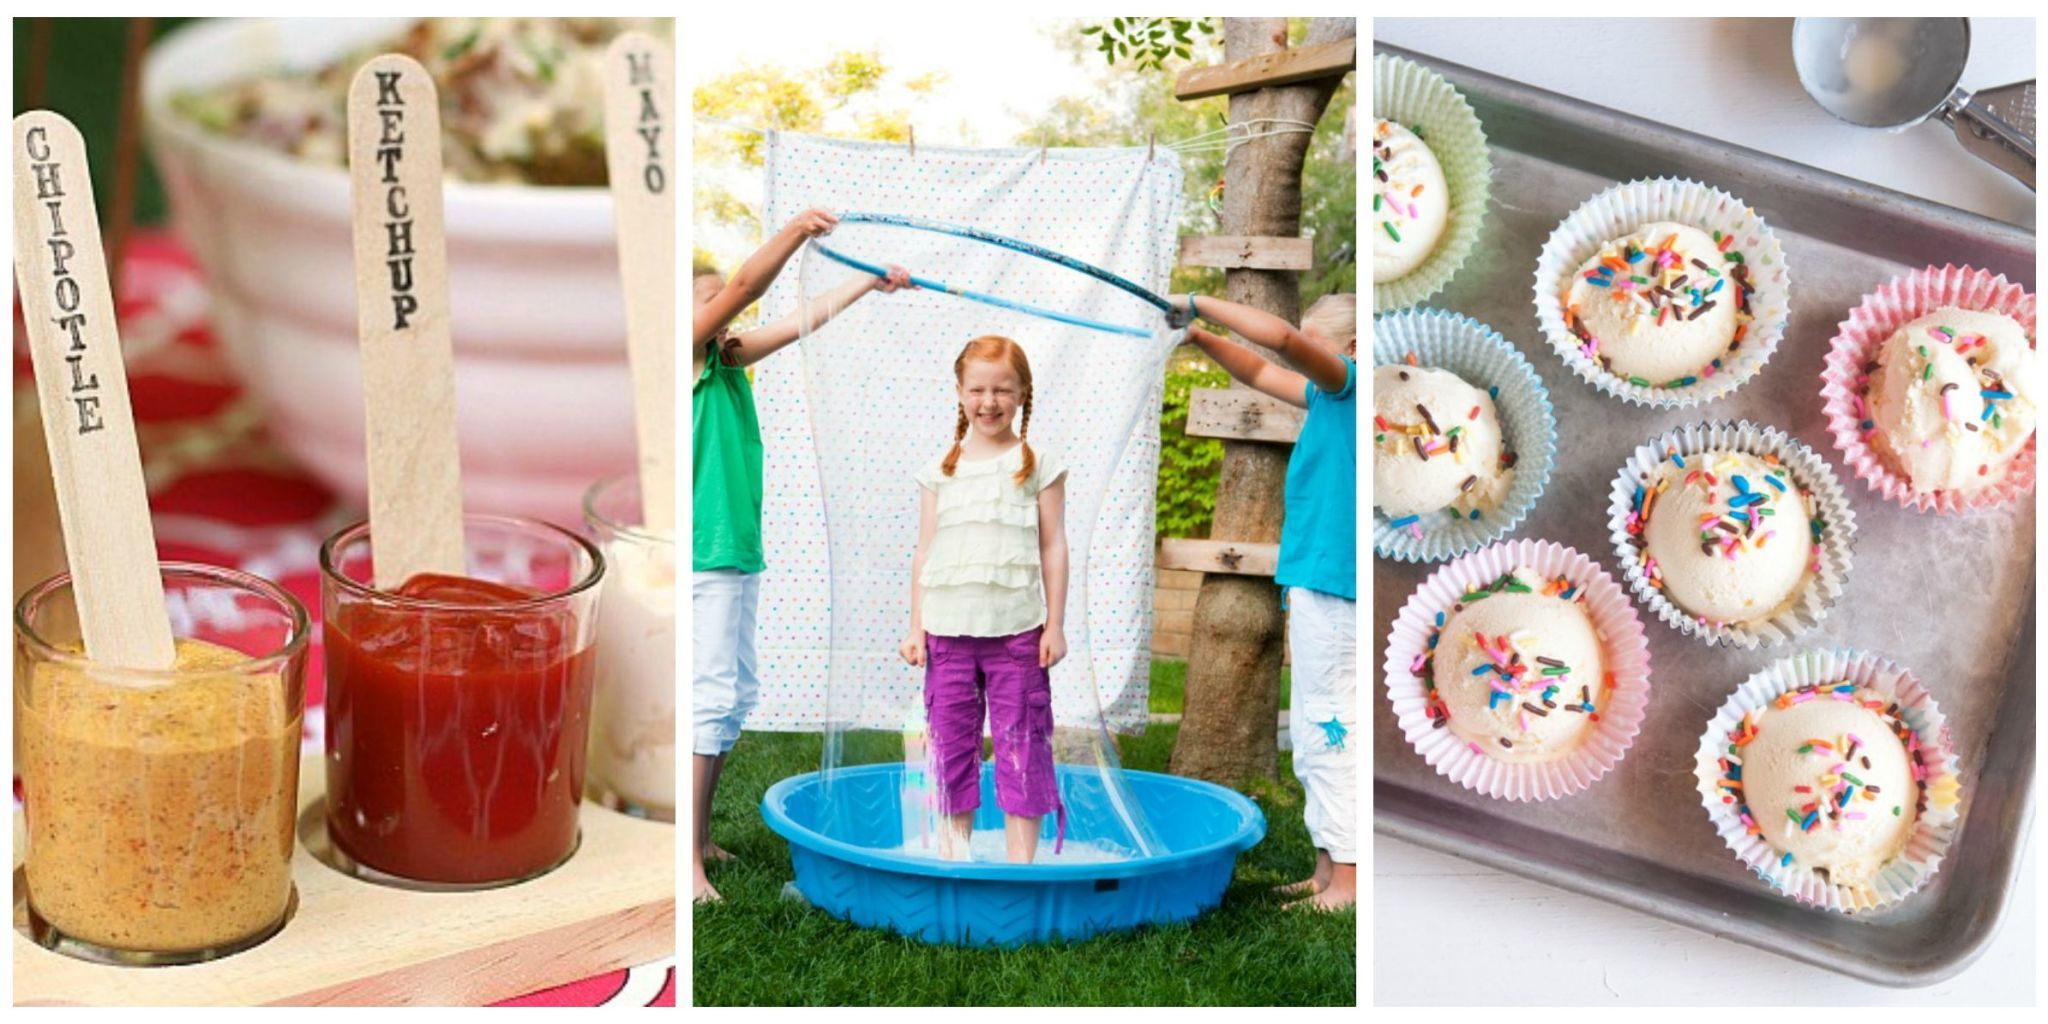 Steal these fast fresh tips for your next outdoor affair. & 35 Best Backyard BBQ Party Ideas - Summer Party Tips